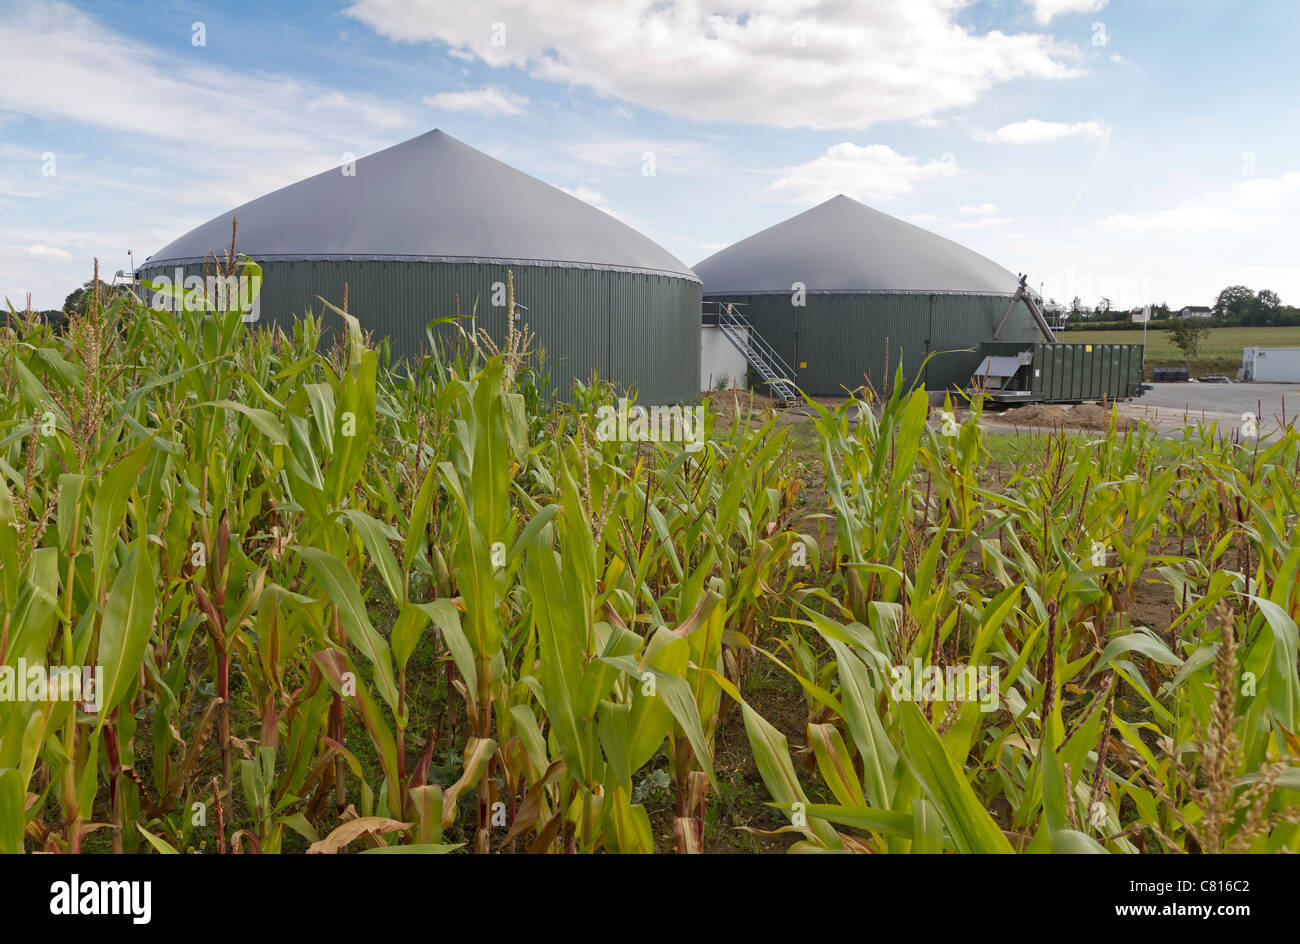 Biogas plant with cornfield - Stock Image